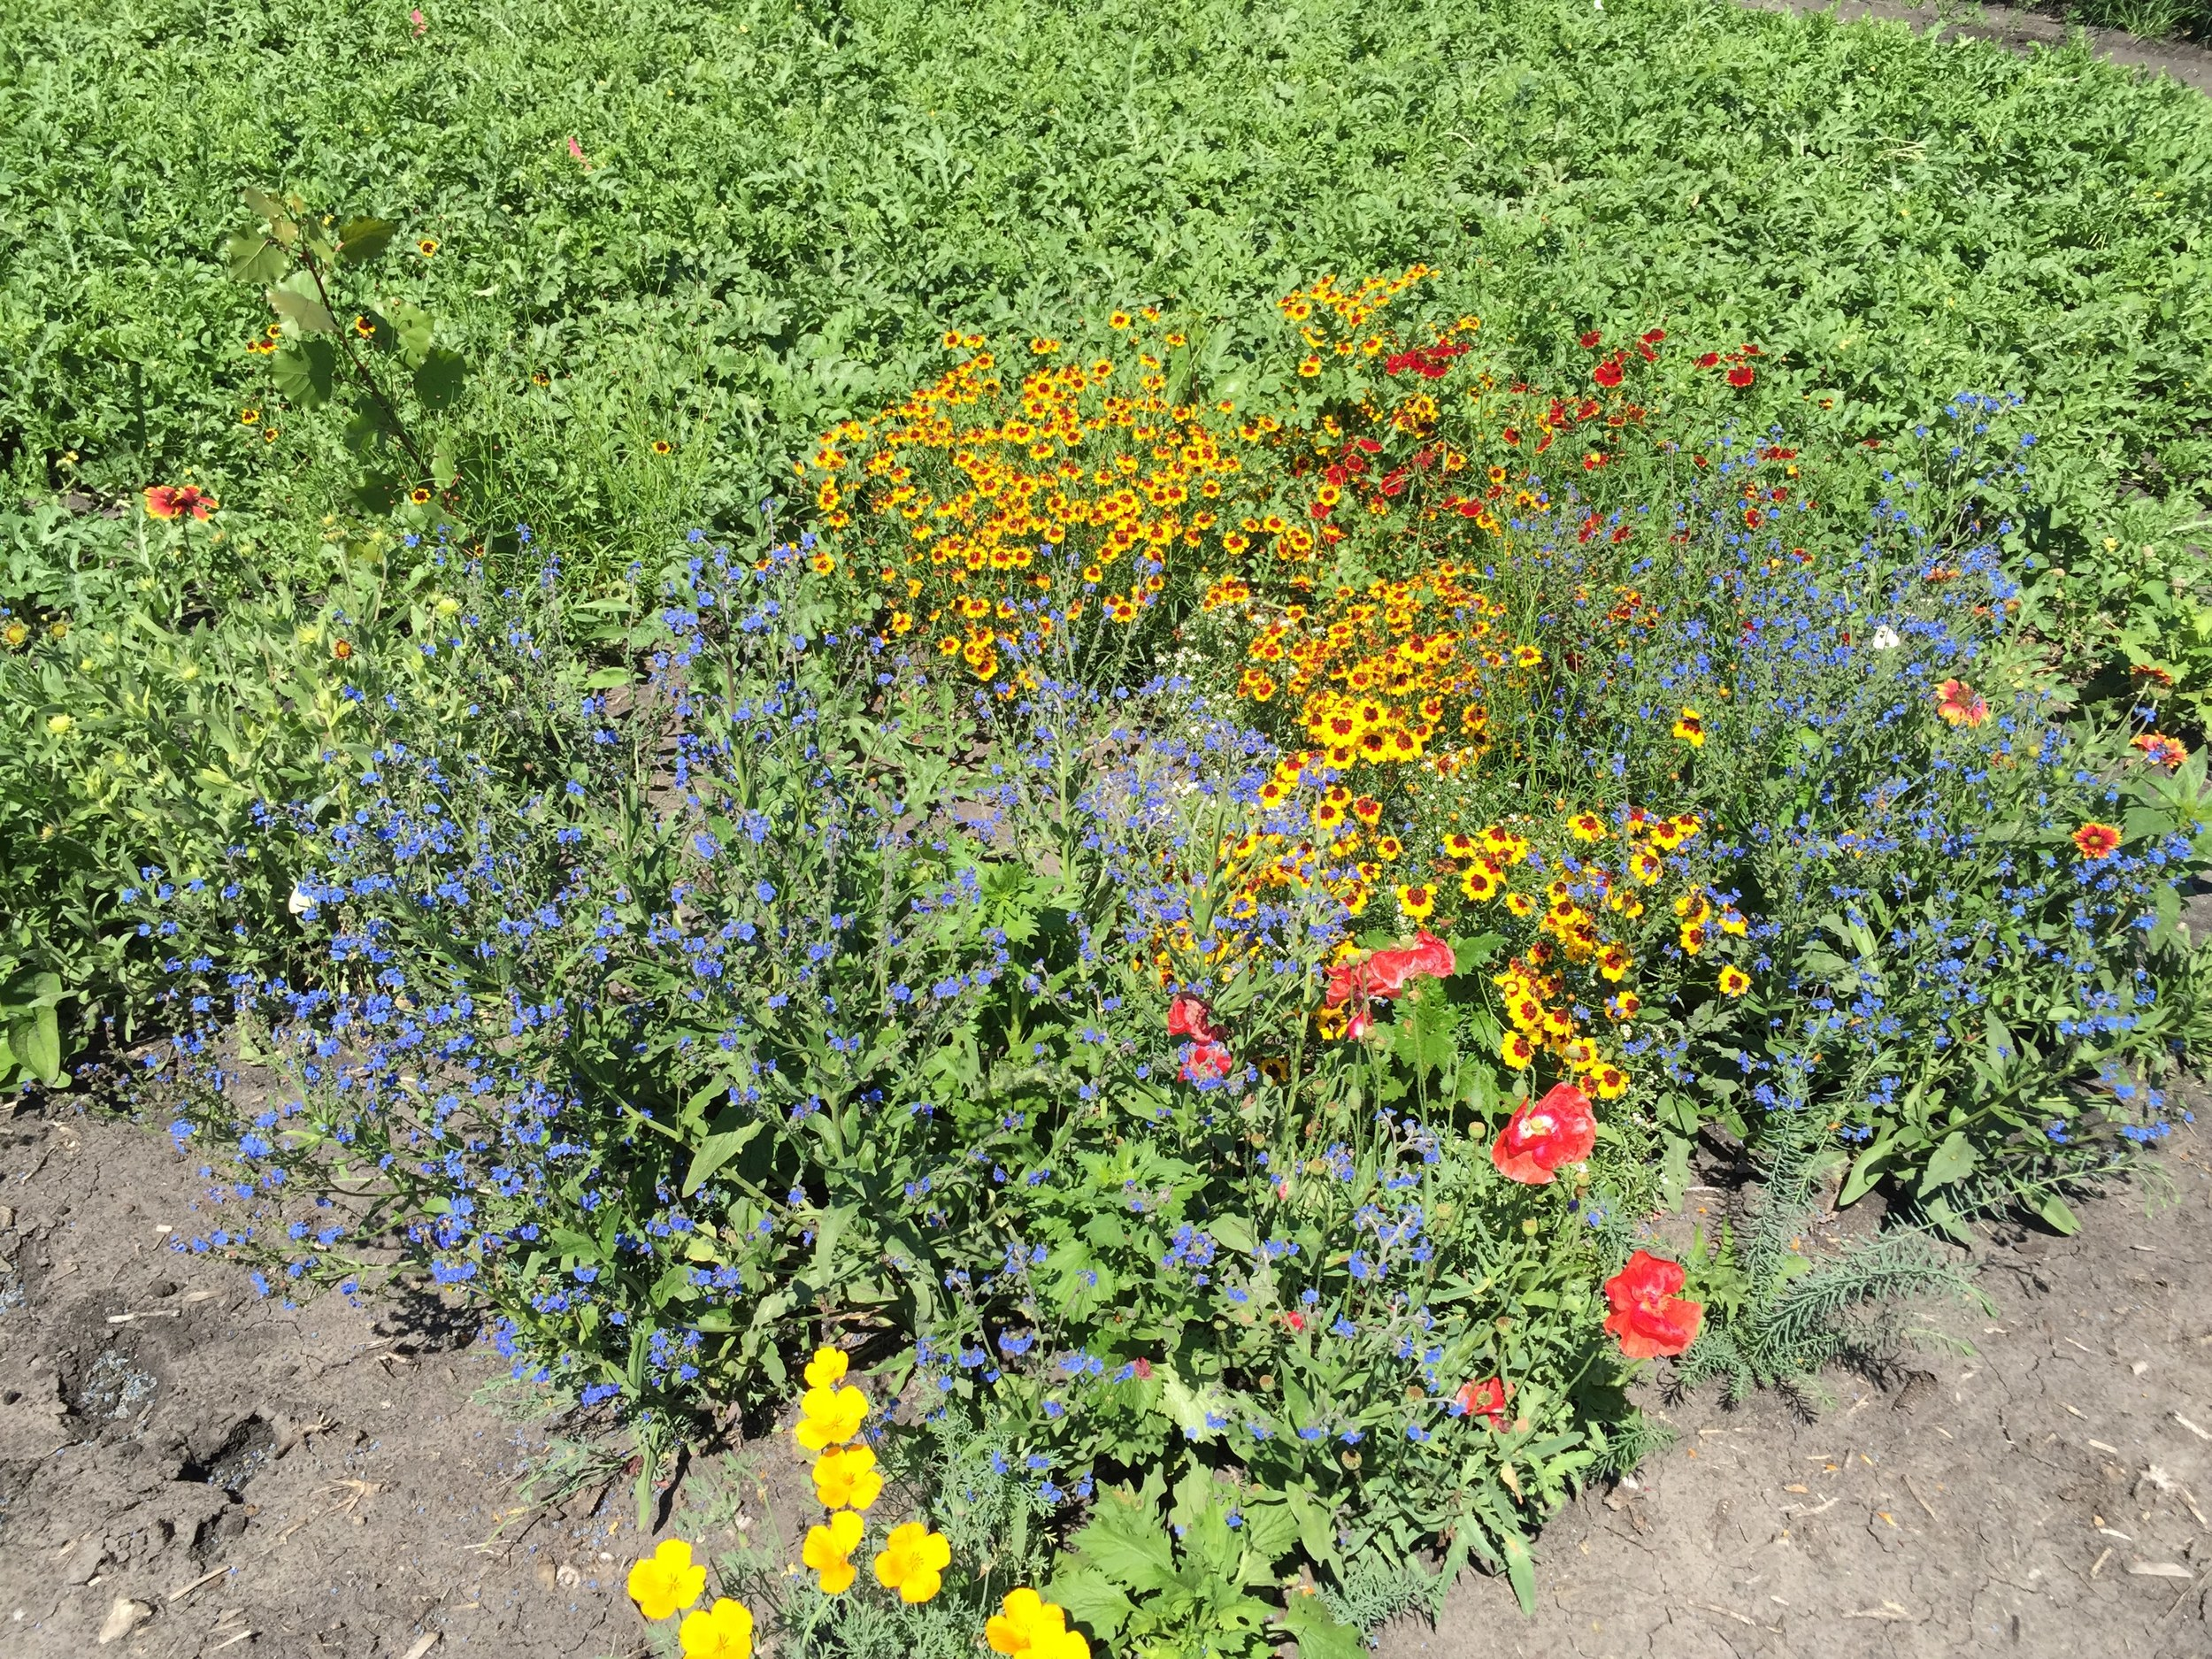 Polinator attracting flowers in full bloom.